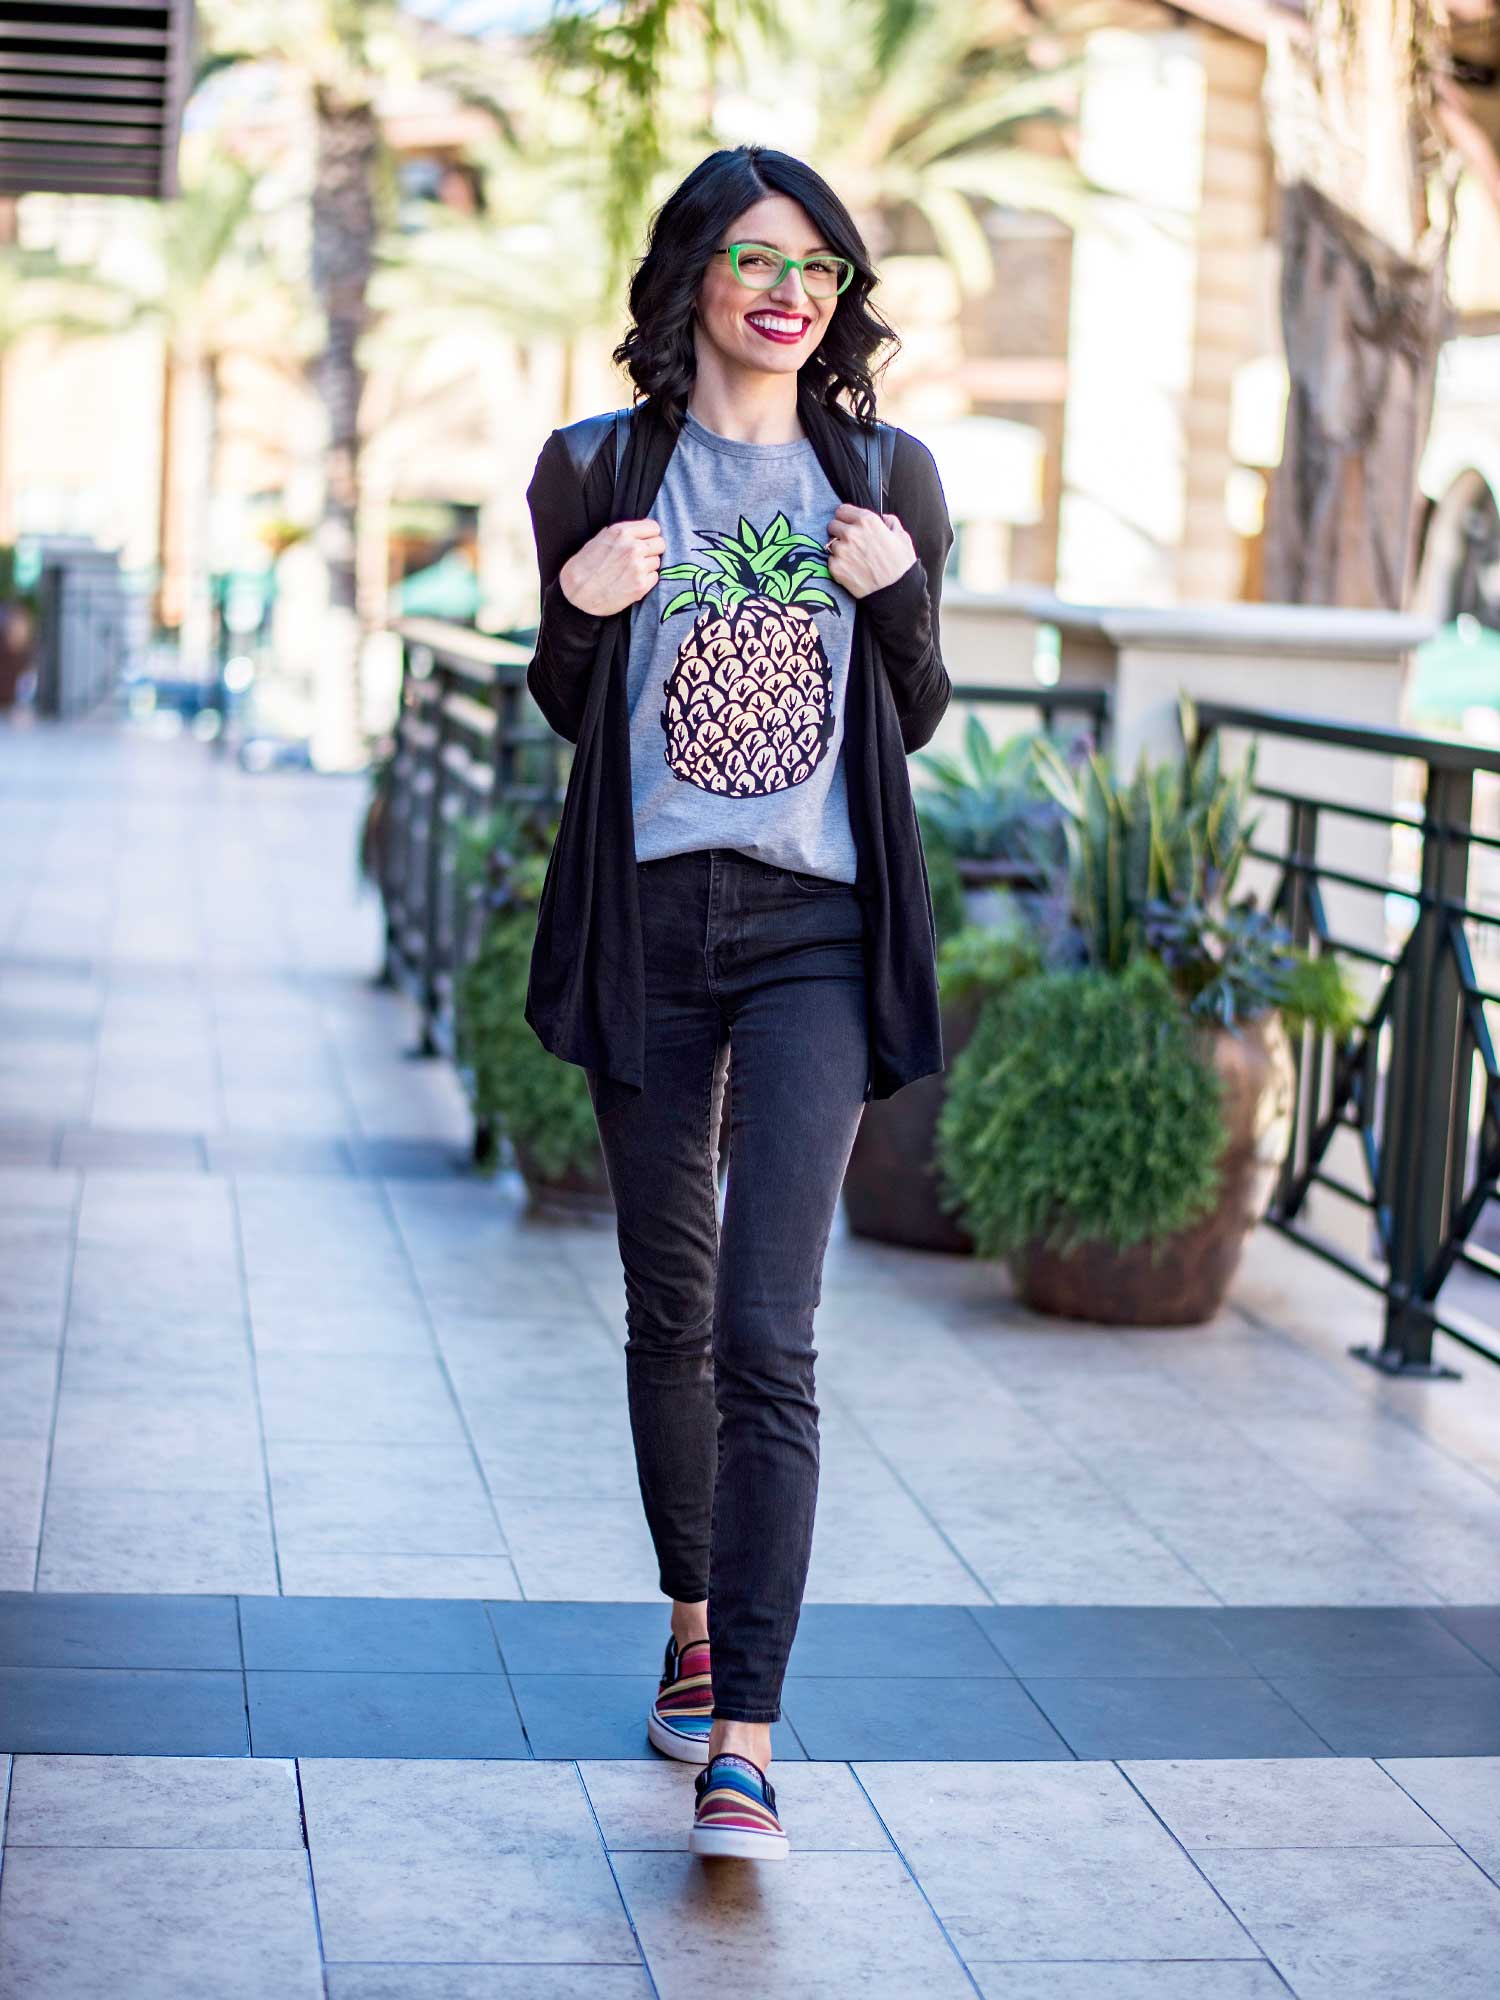 jenna-pilant-san-diego-fashion-blogger-lucky-little-mustardseed-how-to-wear-your-favorite-summer-t-shirt-in-the-fall-1